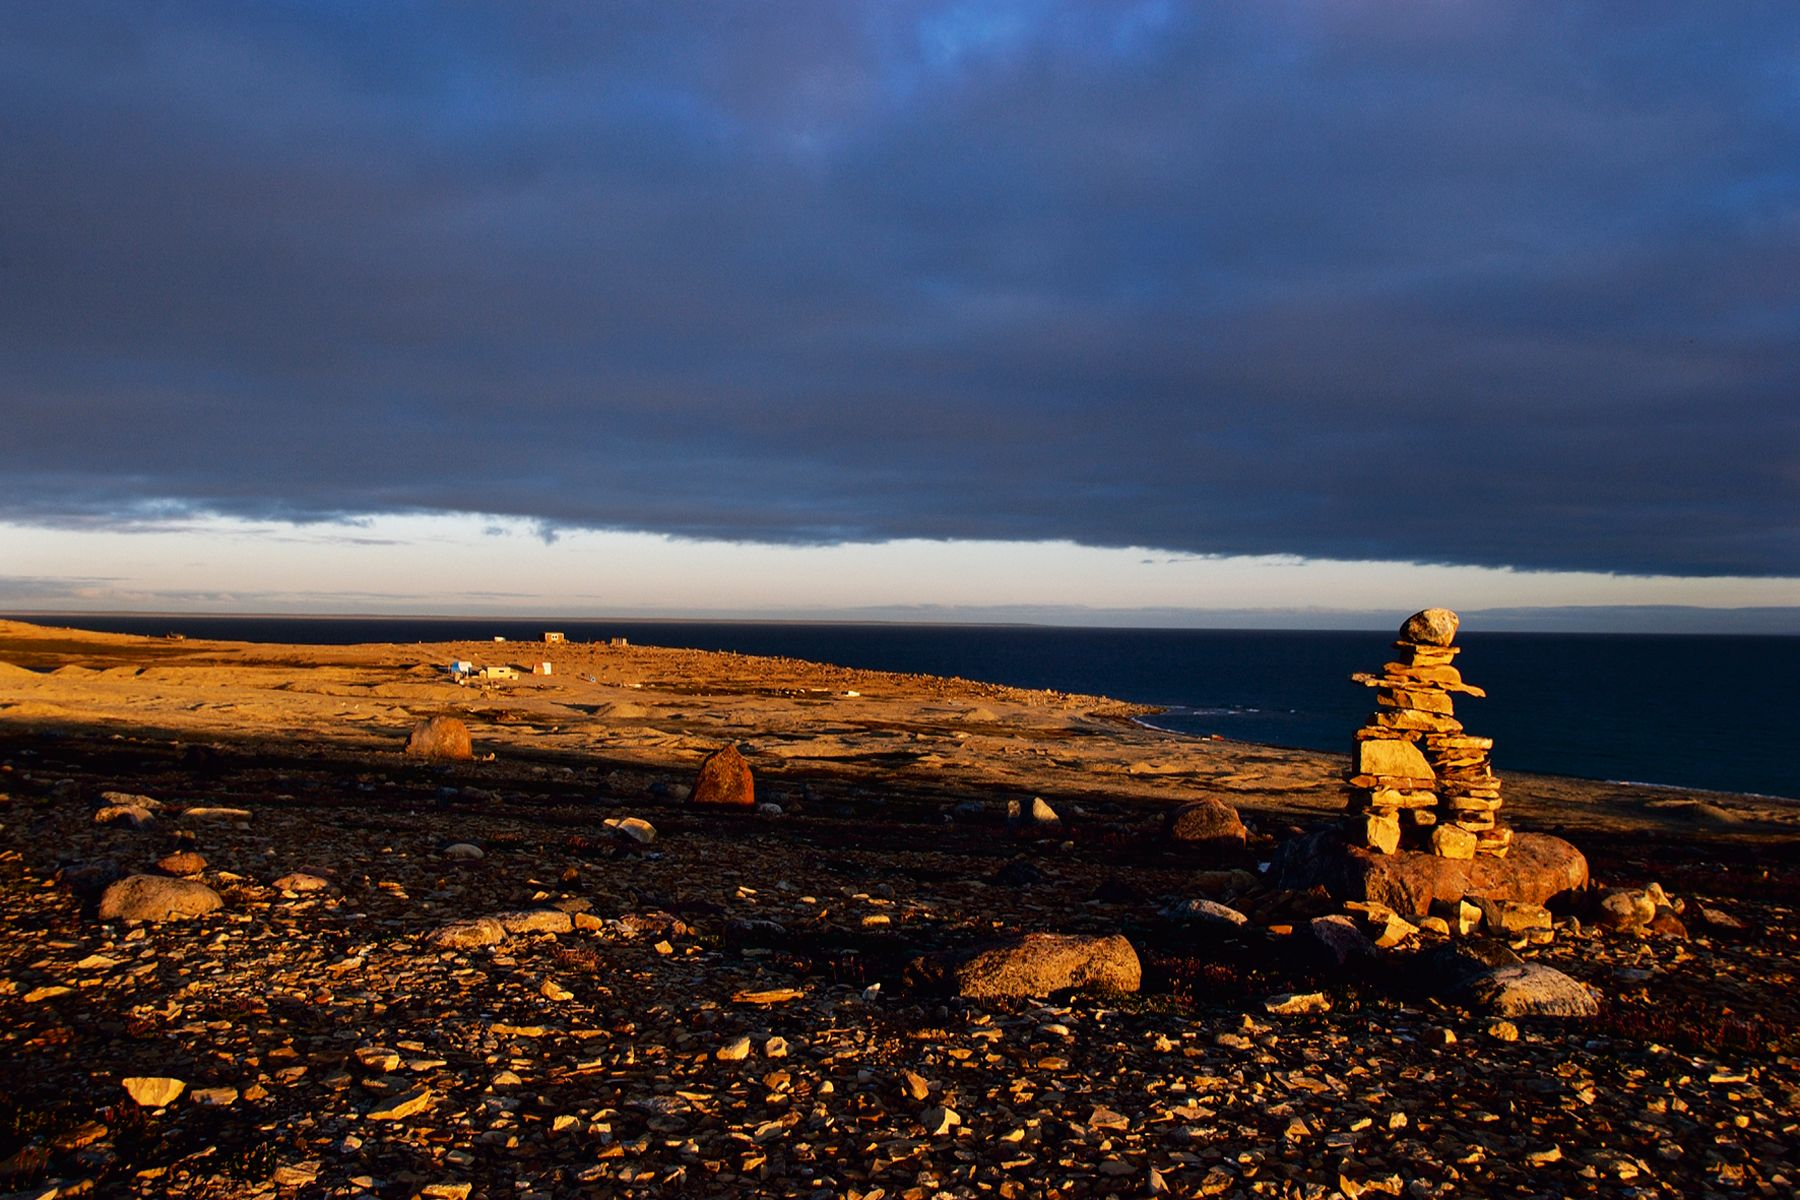 Western Arm, Inukshuk on the tundra, location photographer